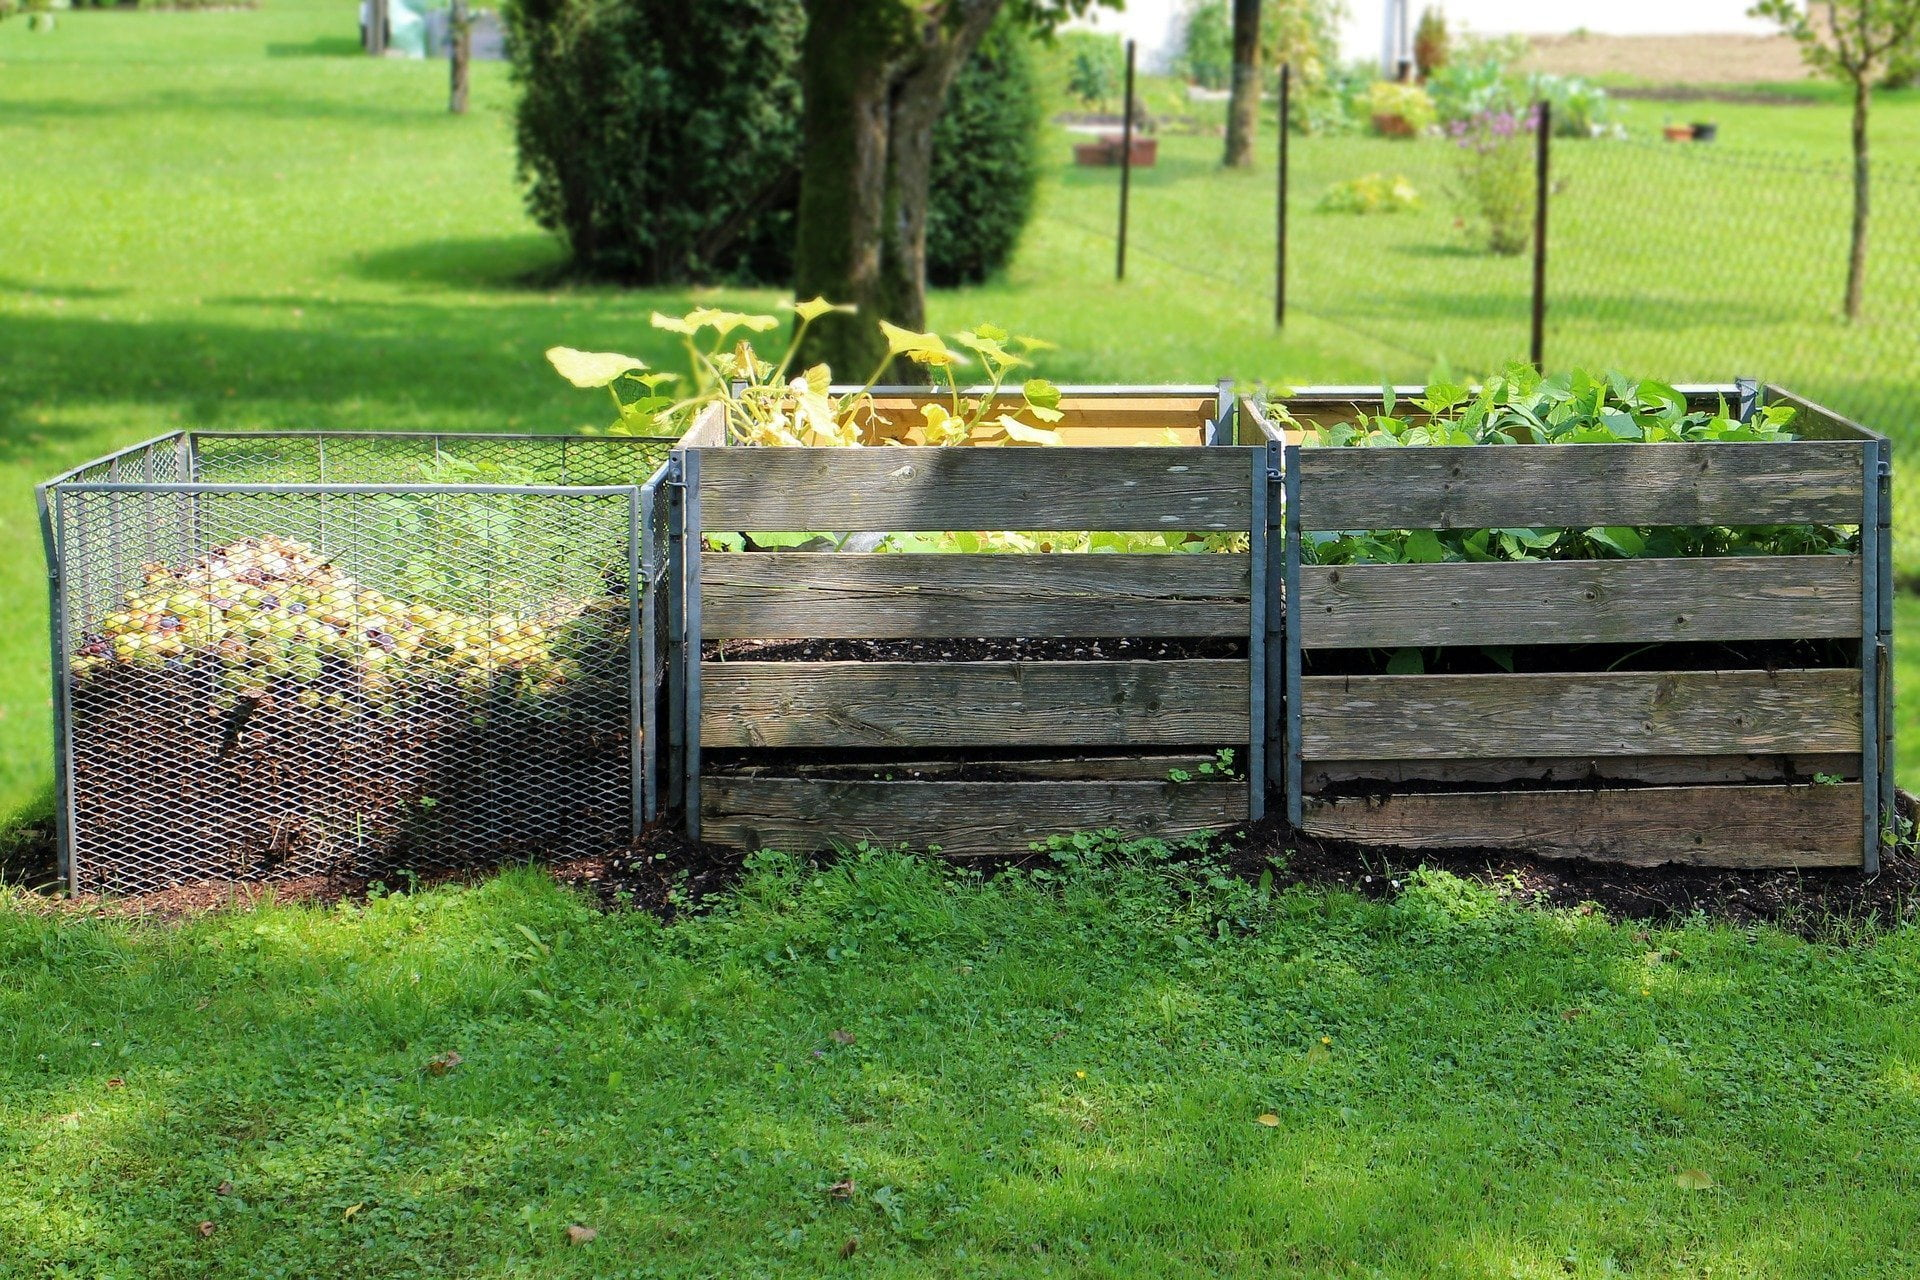 A Gardening Guide: How to Make Compost at Home